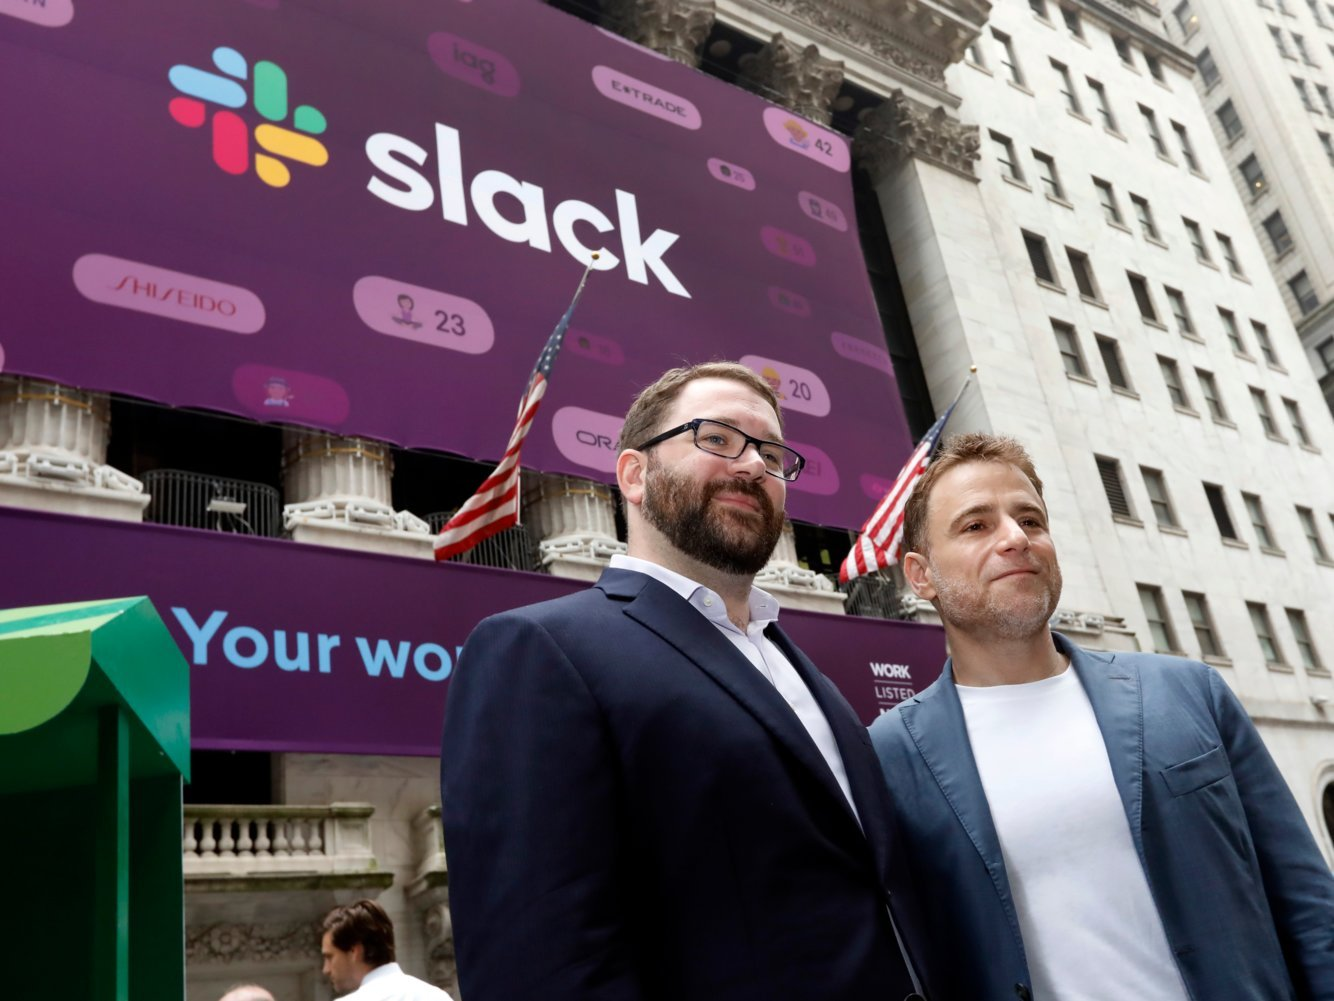 Slack stock is down 12% after its first earnings as a public company, in which it posted a big loss — including $8 million in credits to customers after outages